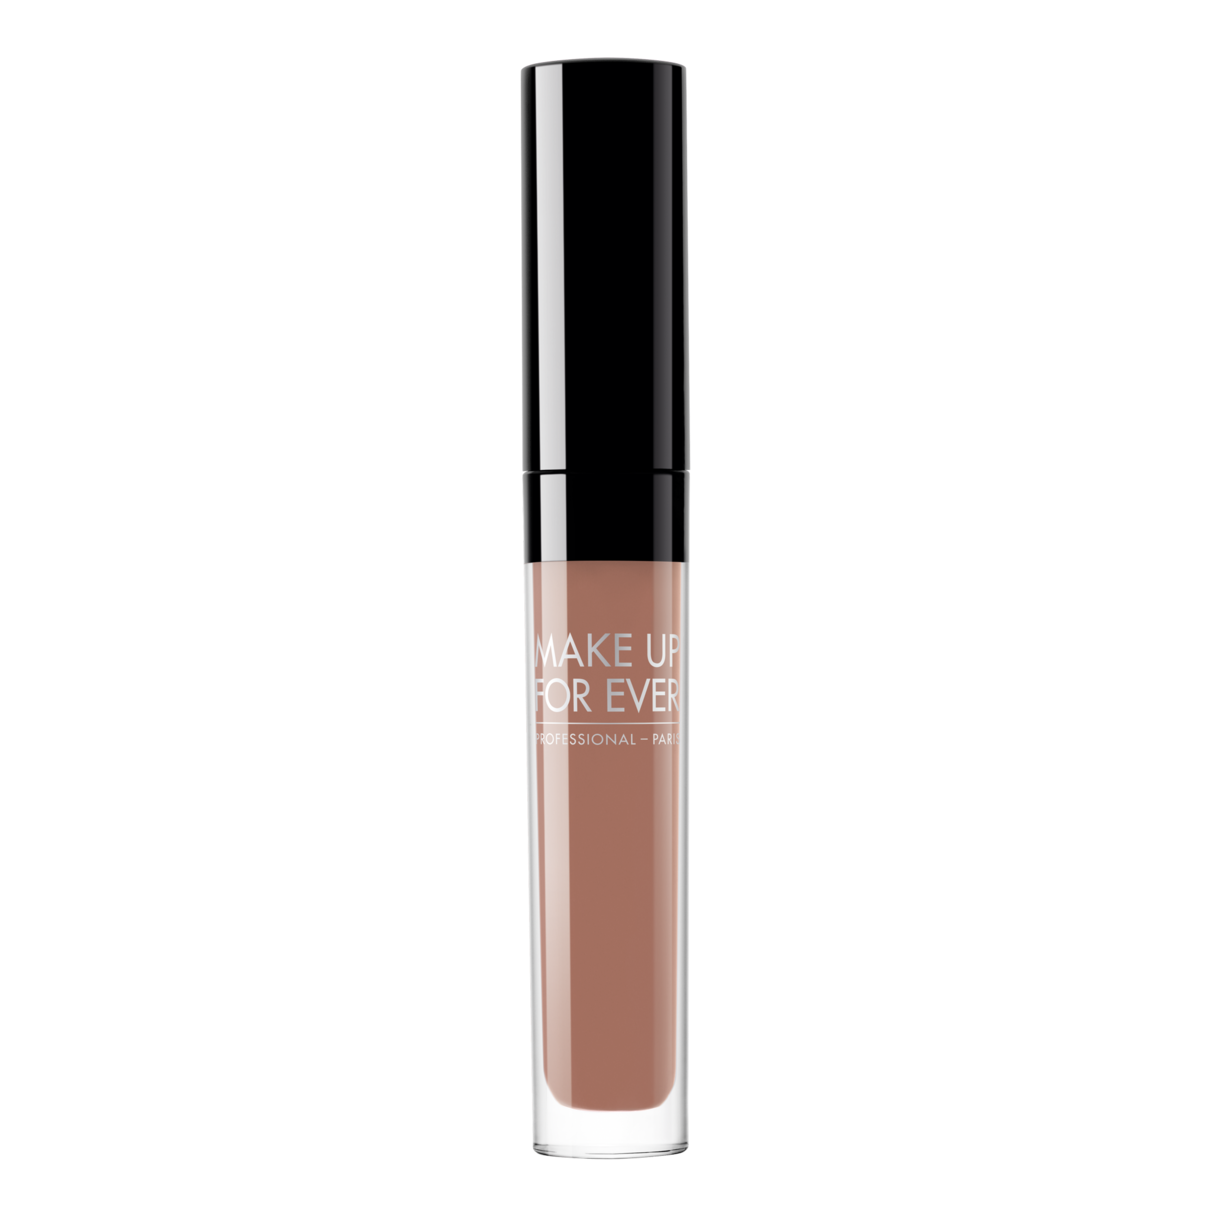 f7792cf53b An ultra matte liquid lipstick with insane color payoff and crazy long  wear. This lipstick is extremely pigmented and wears amazingly well.